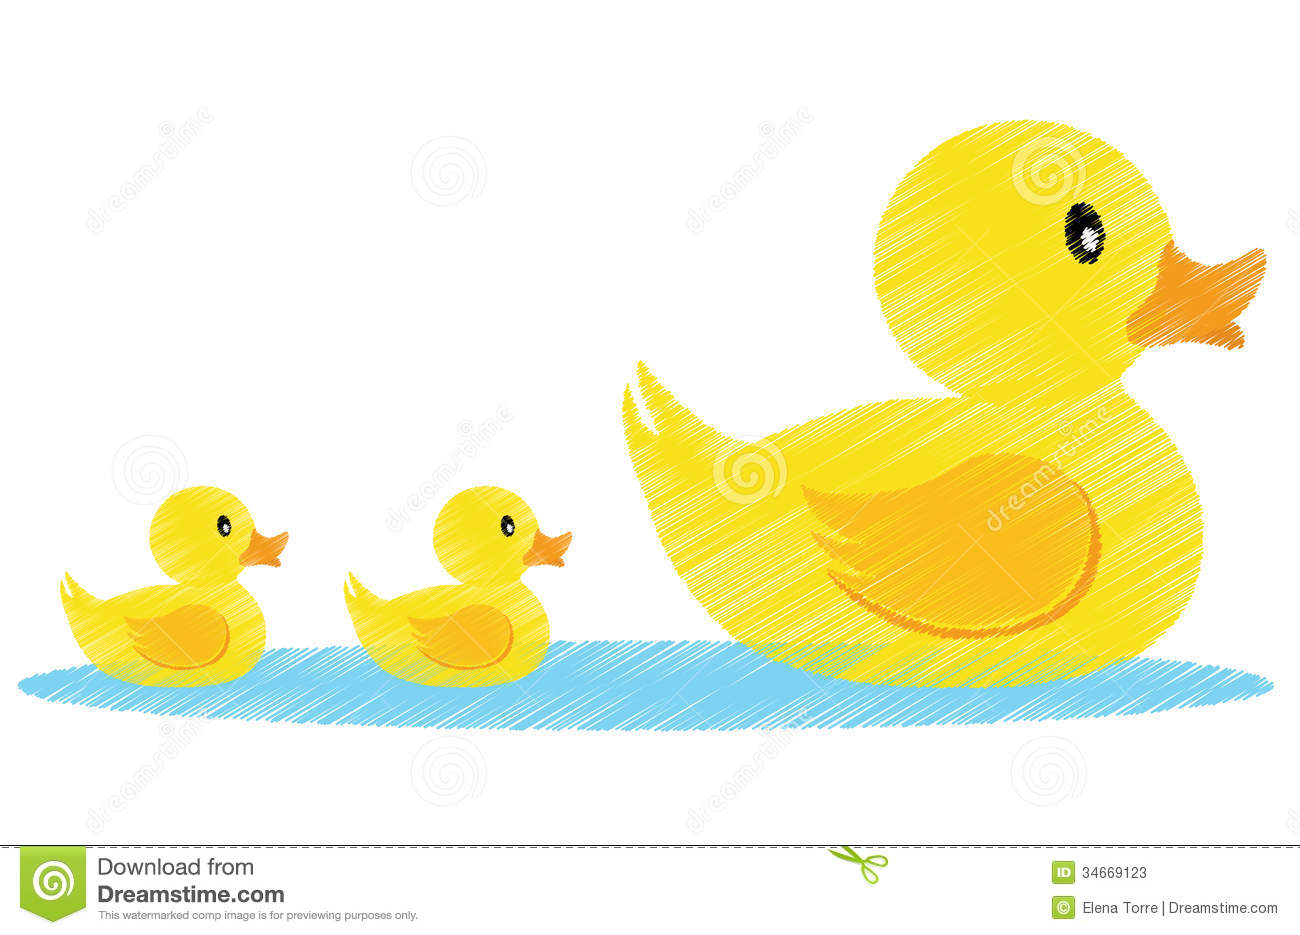 Illustration of a family of yellow ducks + vector eps file.